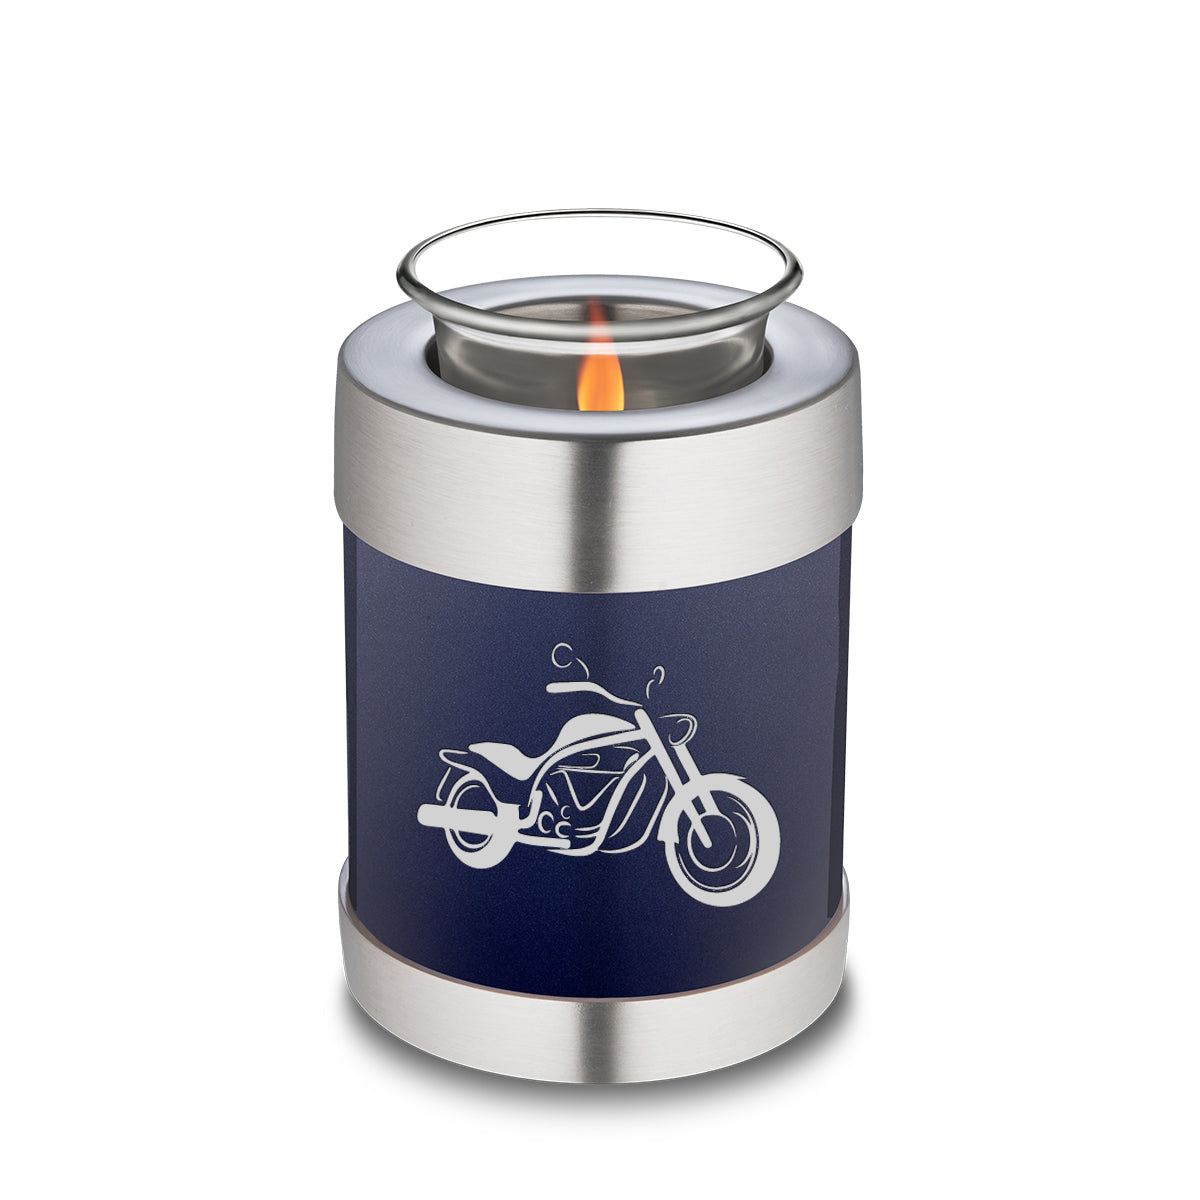 Candle Holder Embrace Cobalt Blue Motorcycle Cremation Urn